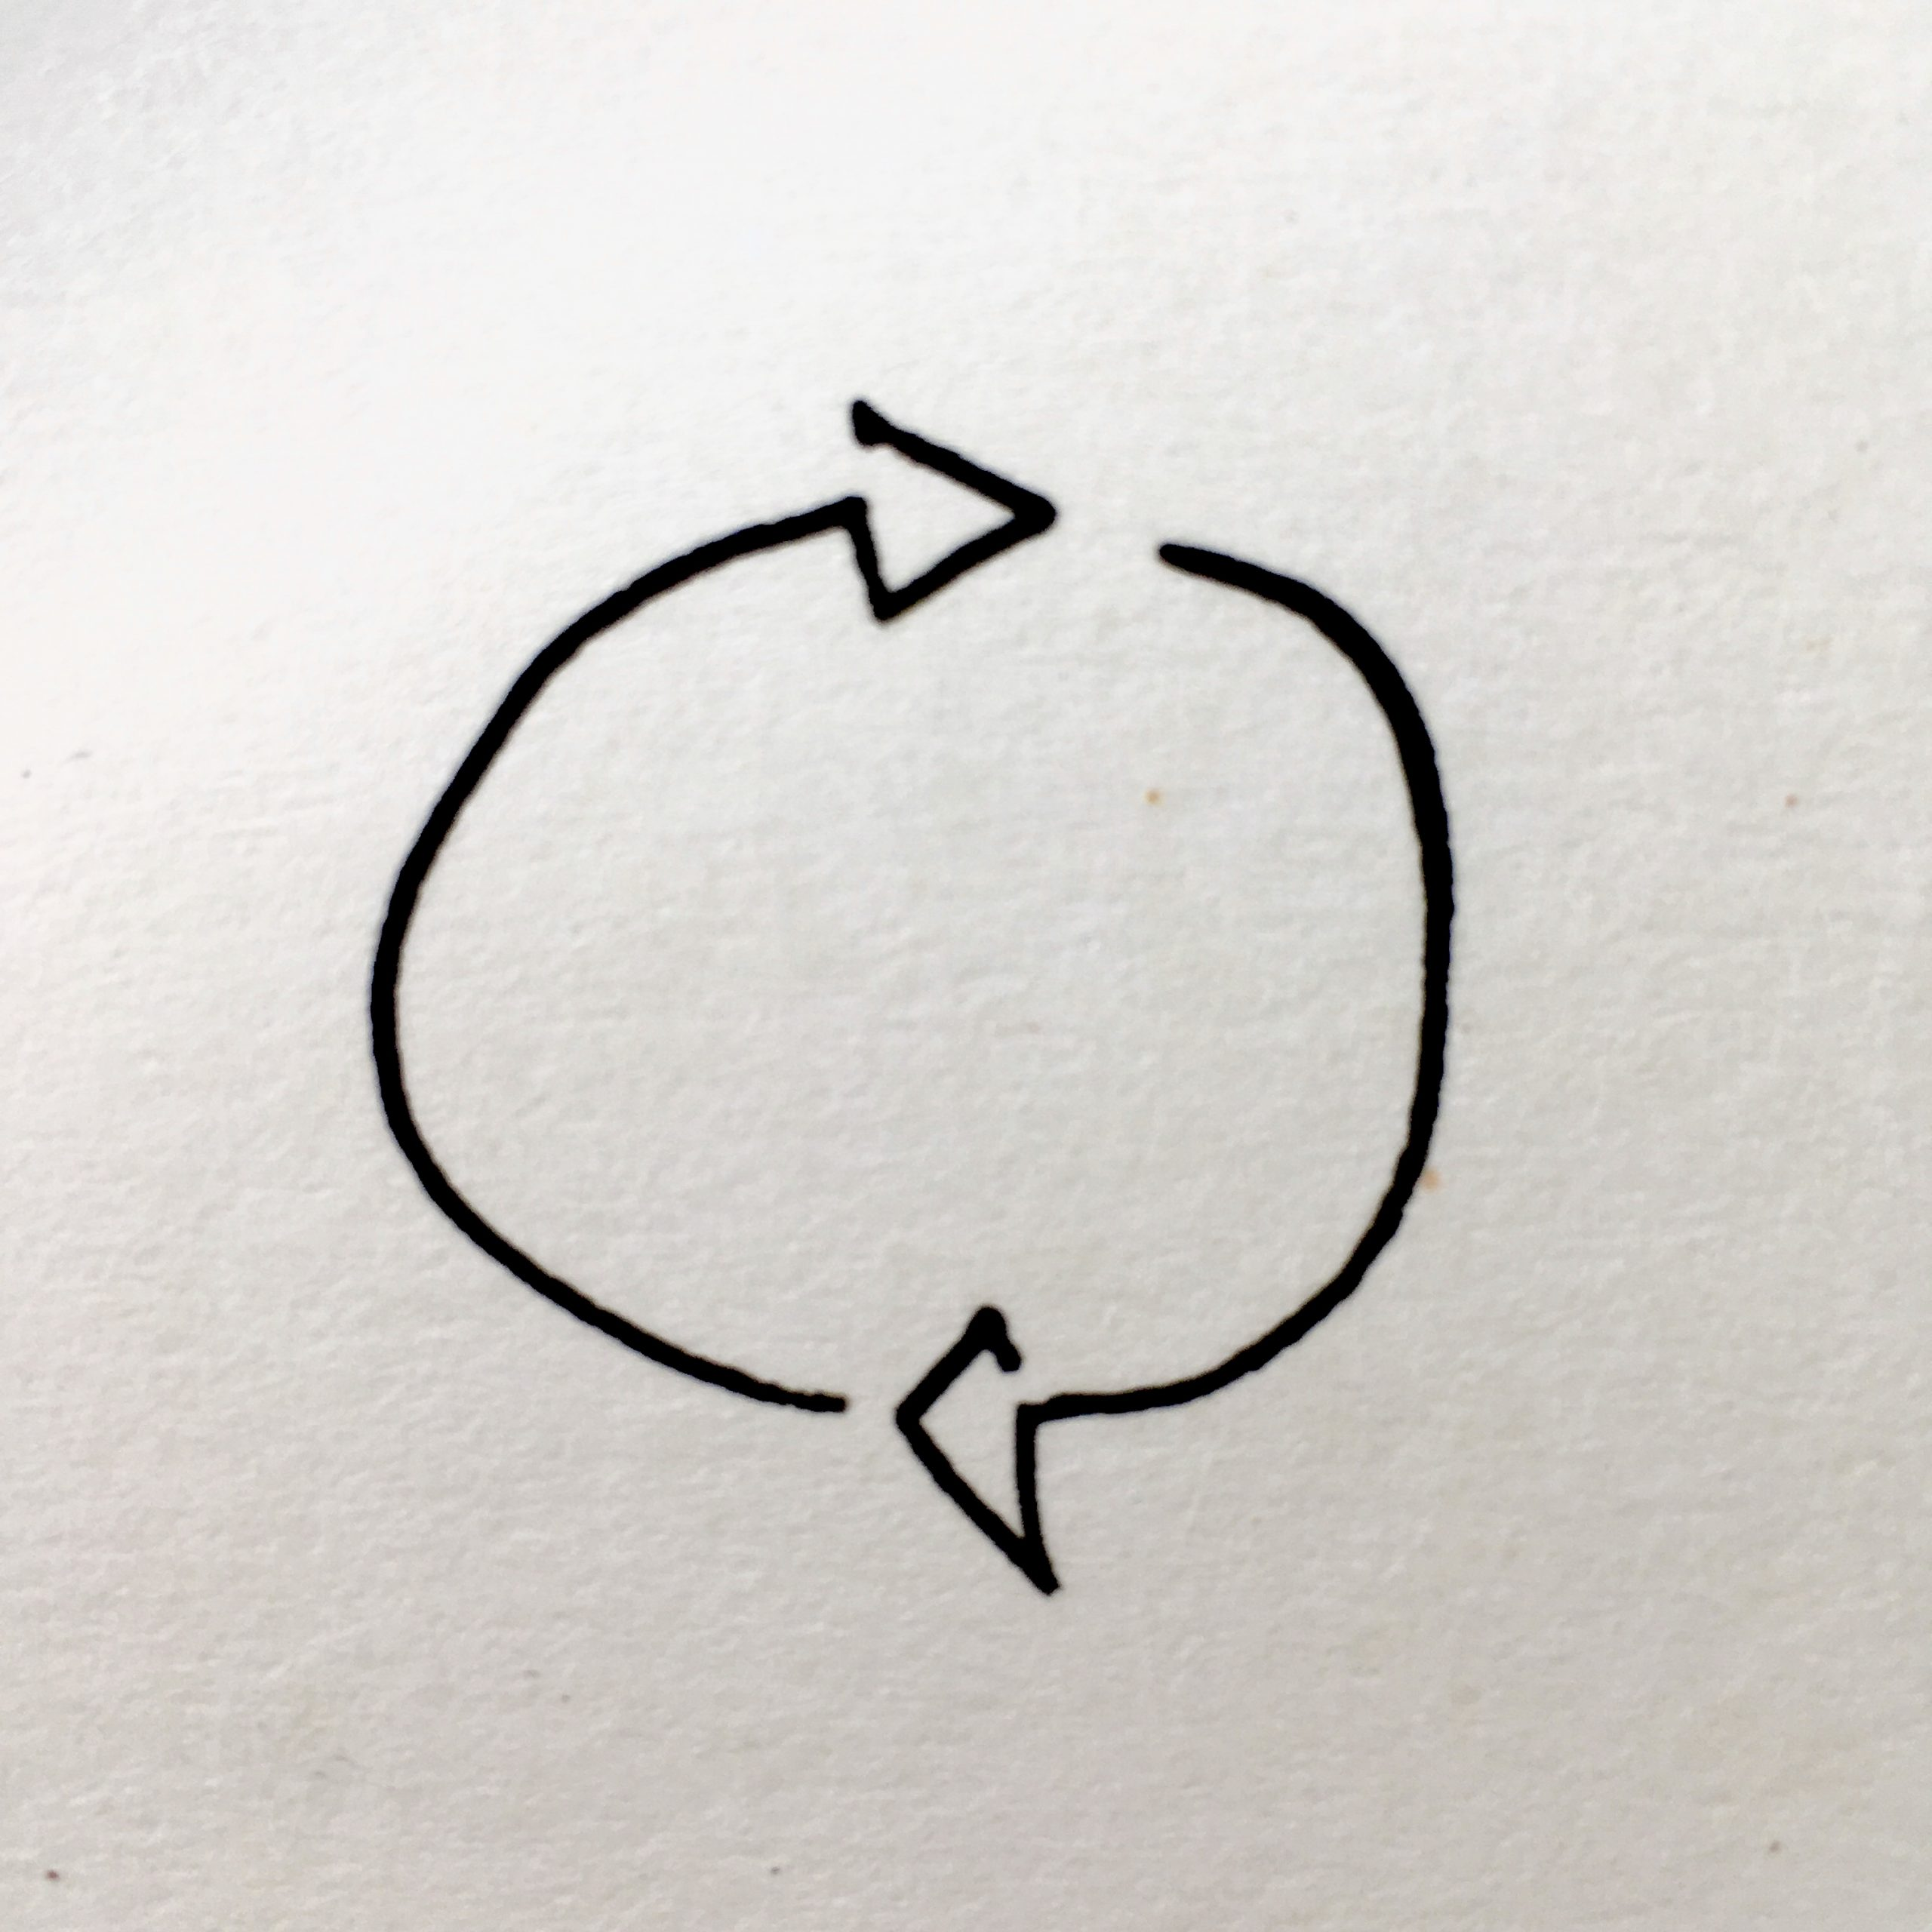 characterful live drawing of two arrows looping back into each other